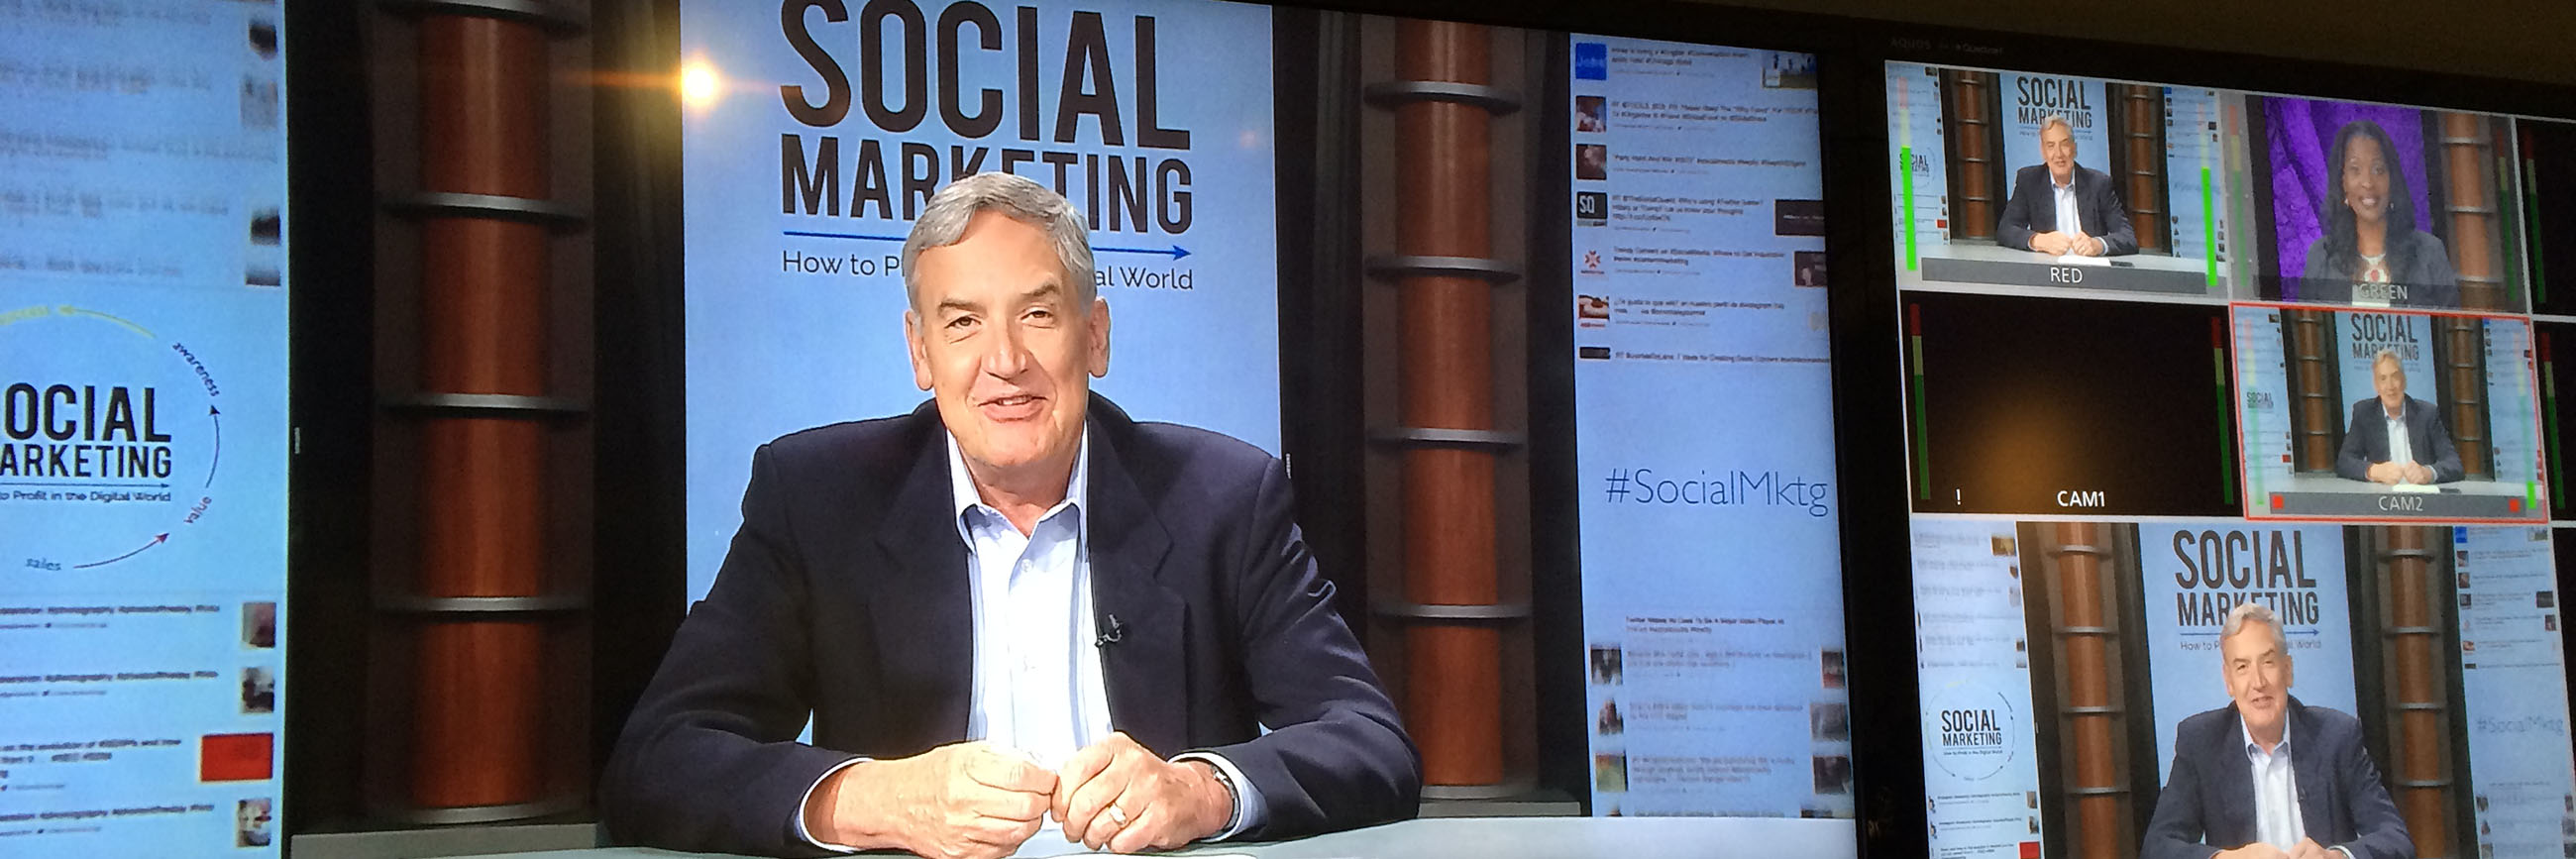 Presenter speaking at a desk with signs that say social marketing behind him